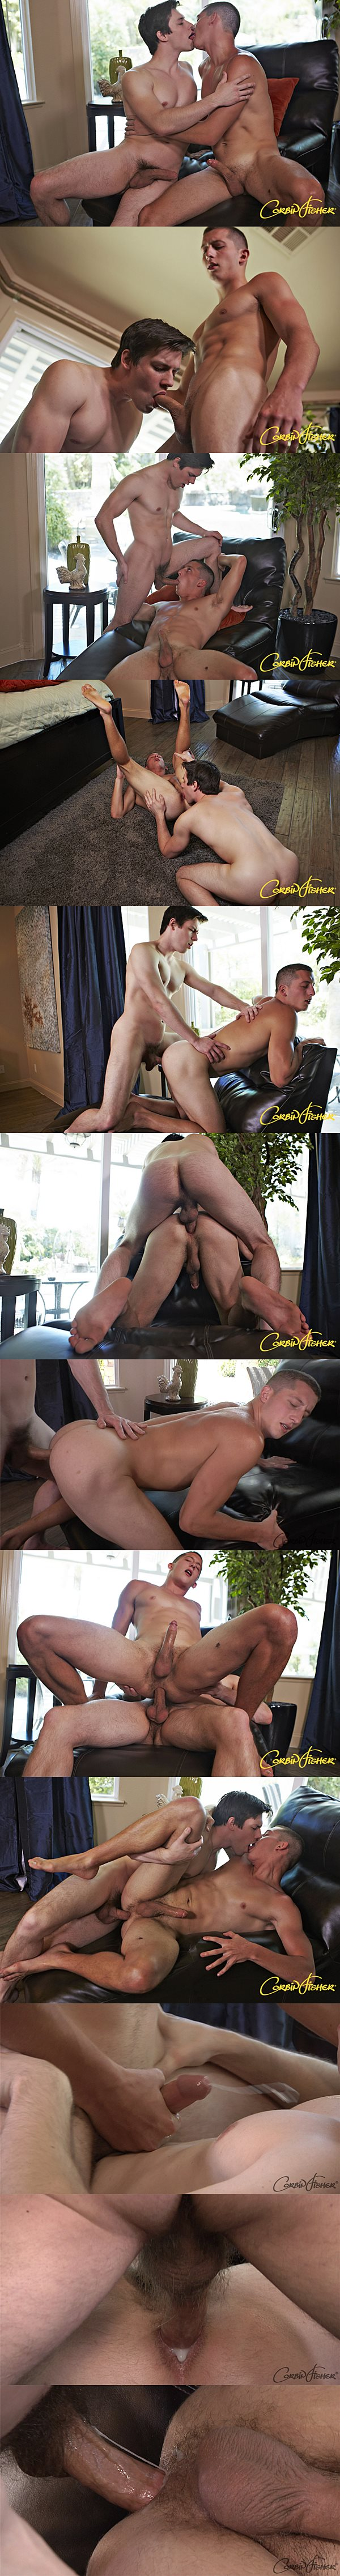 Handsome Kellan barebacks and creampies Easton in his tight virgin ass at Corbinfisher 02